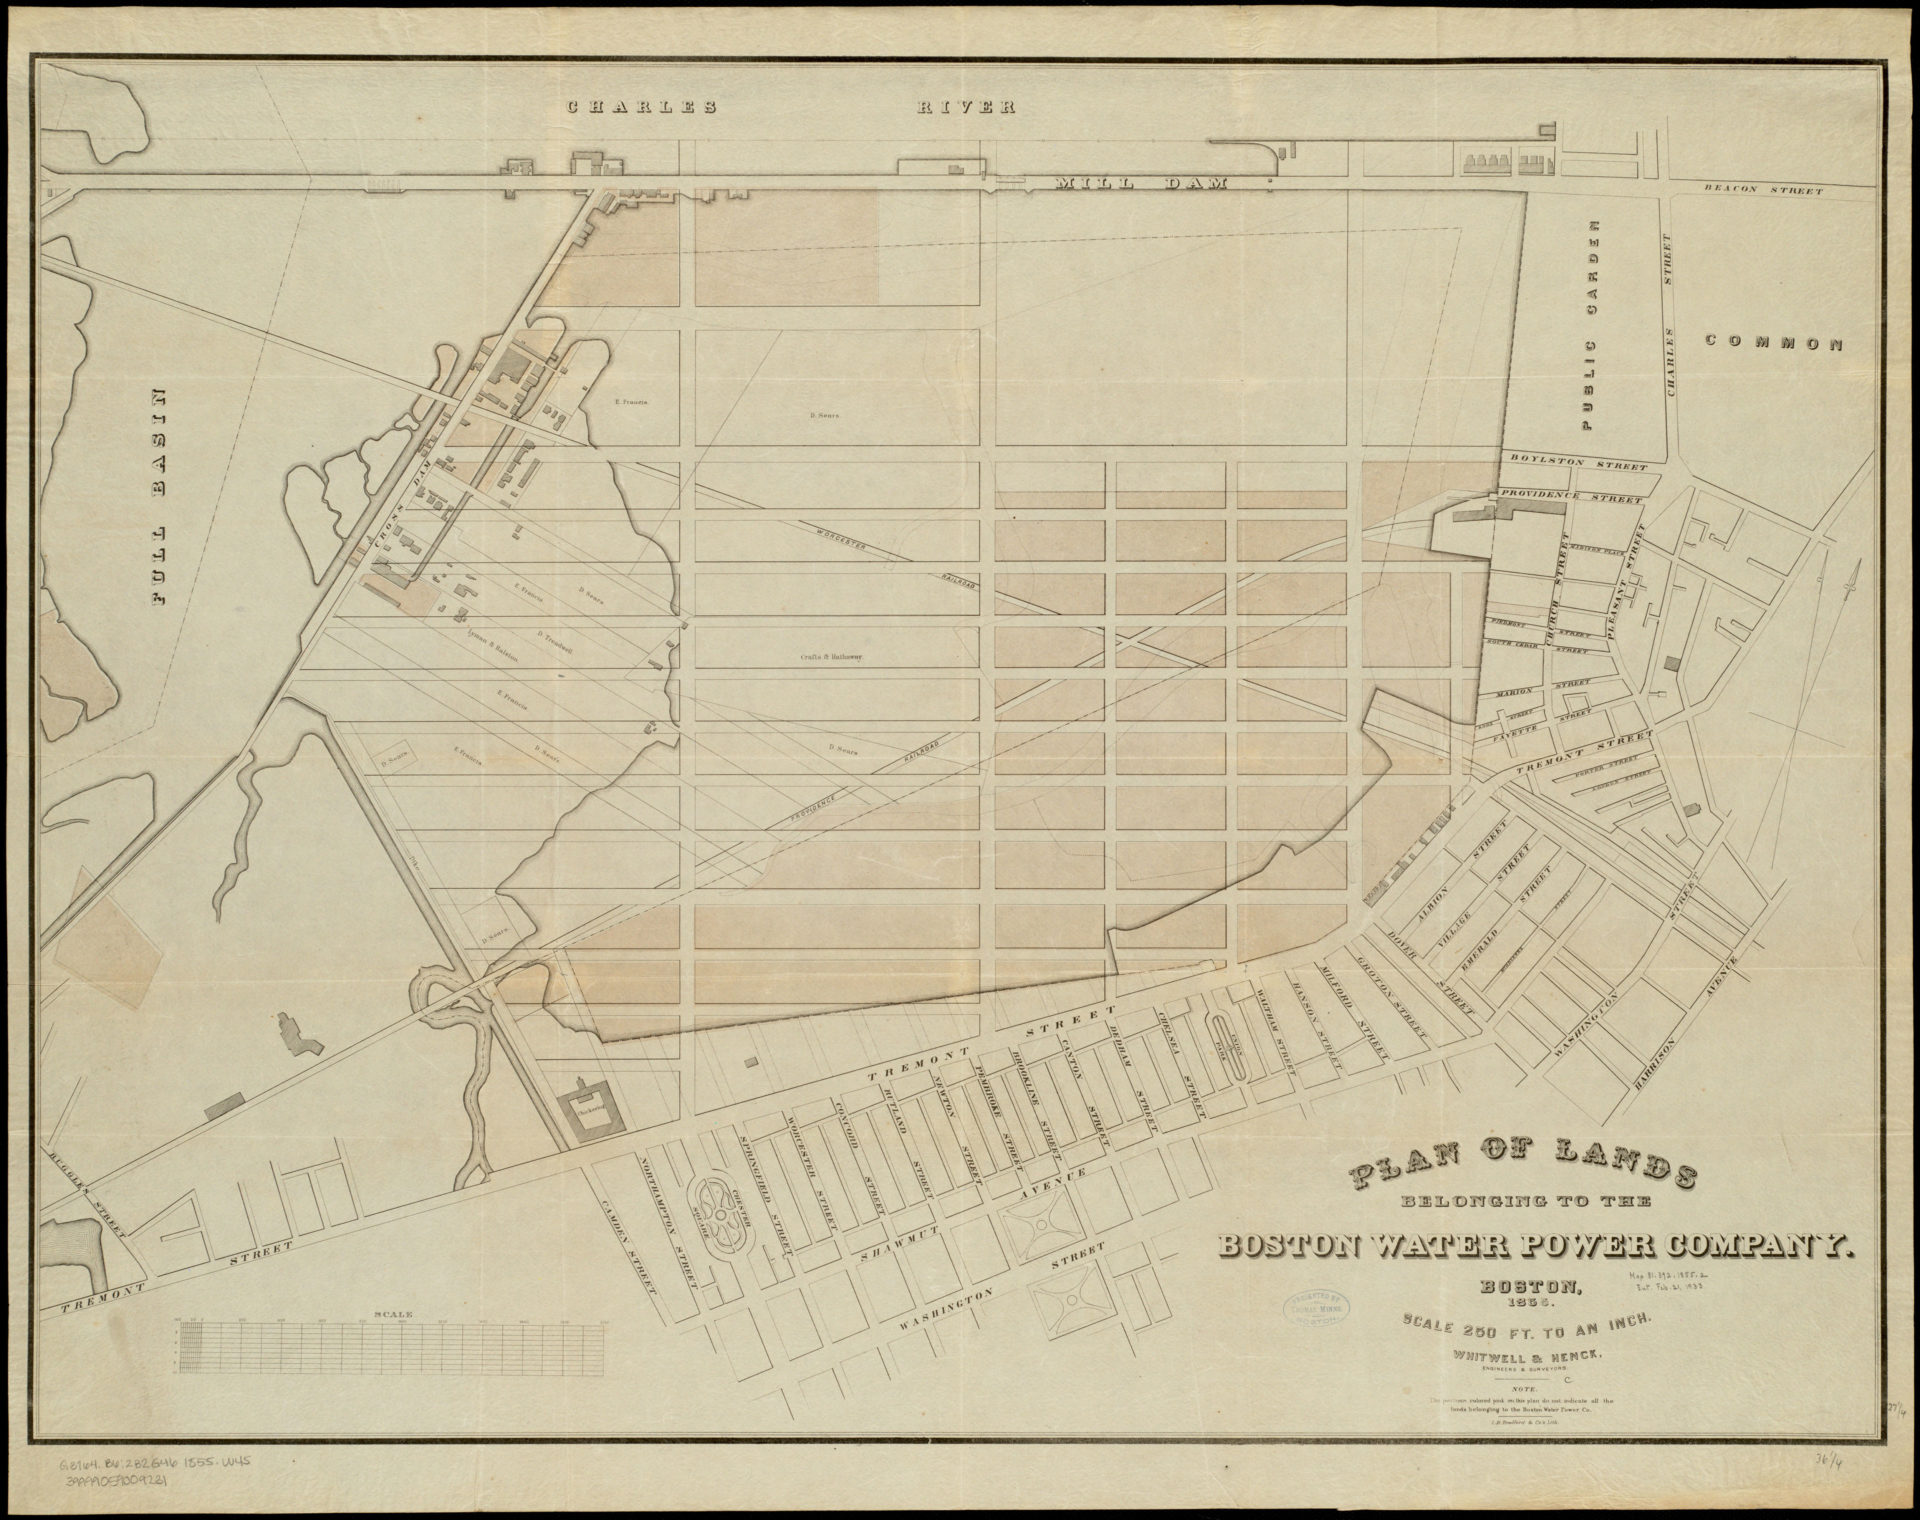 Whitwell & Henck, Plan of lands belonging to the Boston Water Power Company (L. H. Bradford & Co., ca. 1855). (Courtesy the Muriel G. and Norman B. Leventhal Family Foundation)